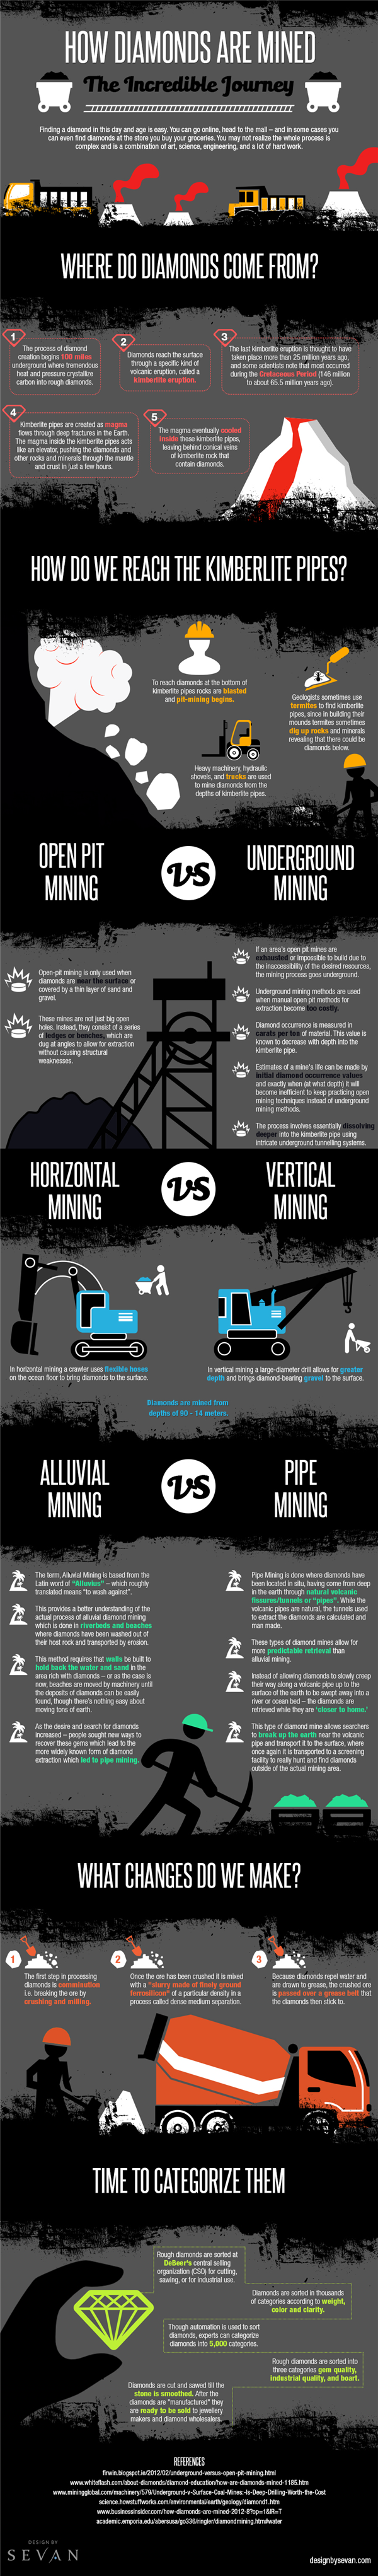 Where Do Diamonds Come From Infographic